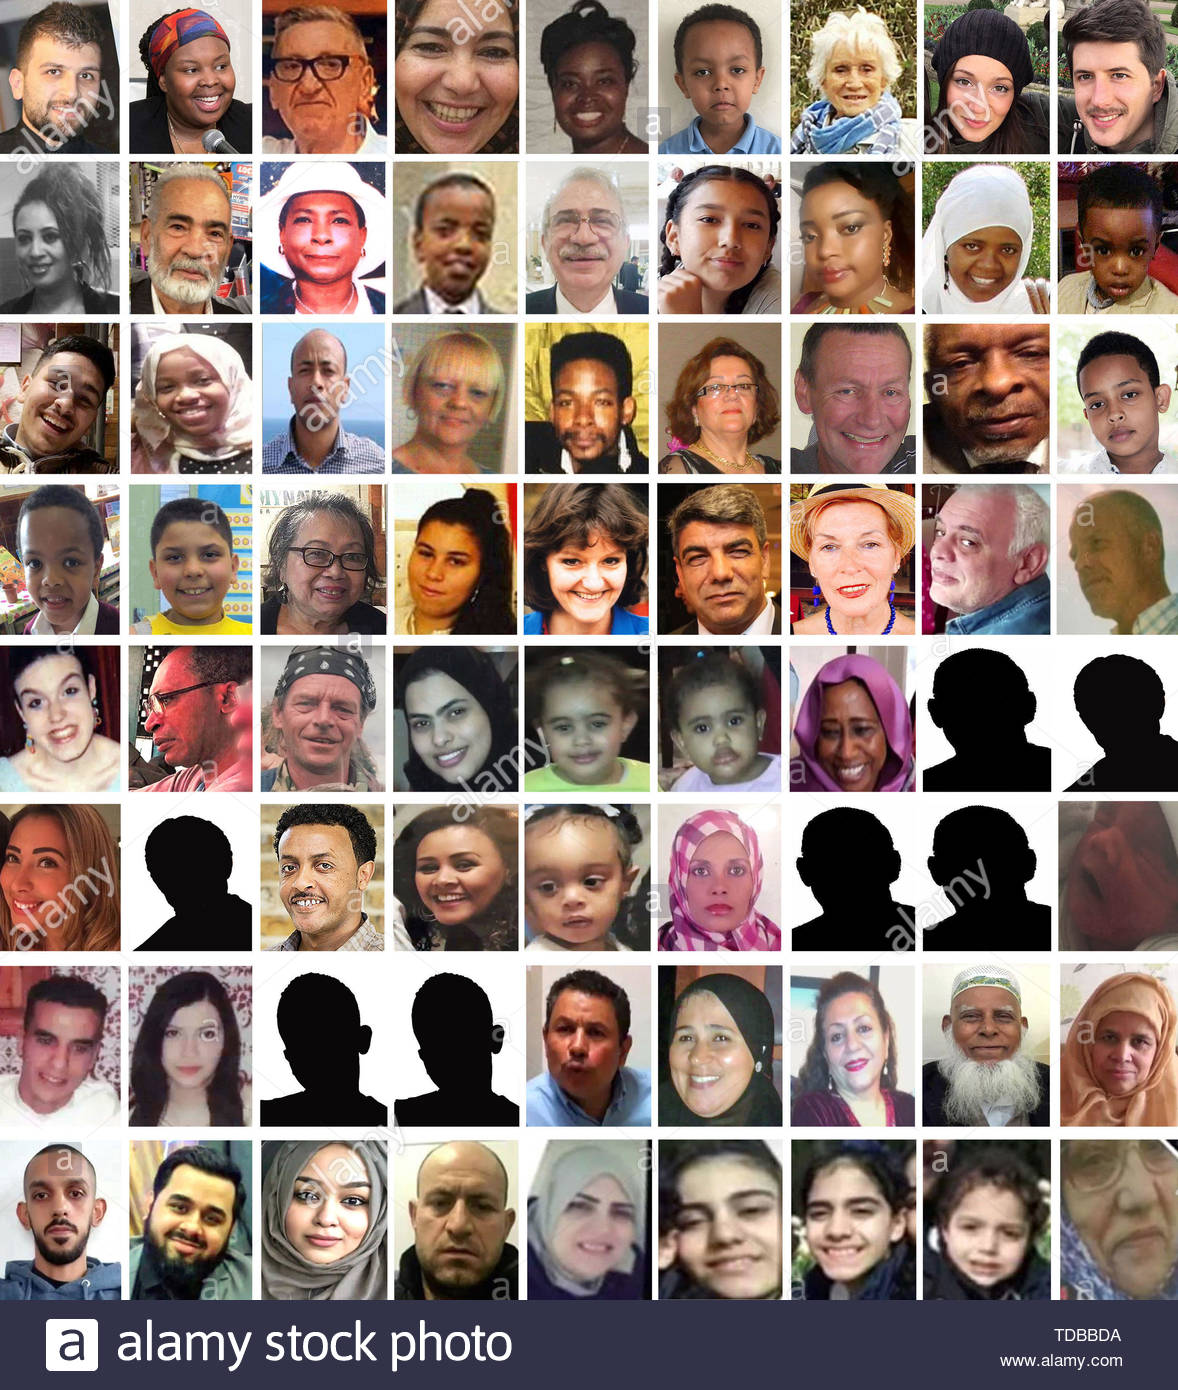 EDITORS NOTE: There are no pictures available for the people shown as a sihouette. BEST QUALITY AVAILABLE Undated handout photos of 72 of the confirmed victims who died in the Grenfell Tower fire. (top row left to right) Mohammad Alhajali, Ya-Haddy Sisi Saye, also known as Khadija Saye, Anthony Disson, Khadija Khalloufi, Mary Mendy, Isaac Paulos, Sheila, Gloria Trevisan, Marco Gottardi, (second row left to right) Berkti Haftom, Ali Jafari, Majorie Vital, Yahya Hashim, Hamid Kani, Jessica Urbano Ramirez, Zainab Deen, Nura Jemal, Jeremiah Deen, (third row left to right) Yasin El-Wahabi, Firdaws  - Stock Image